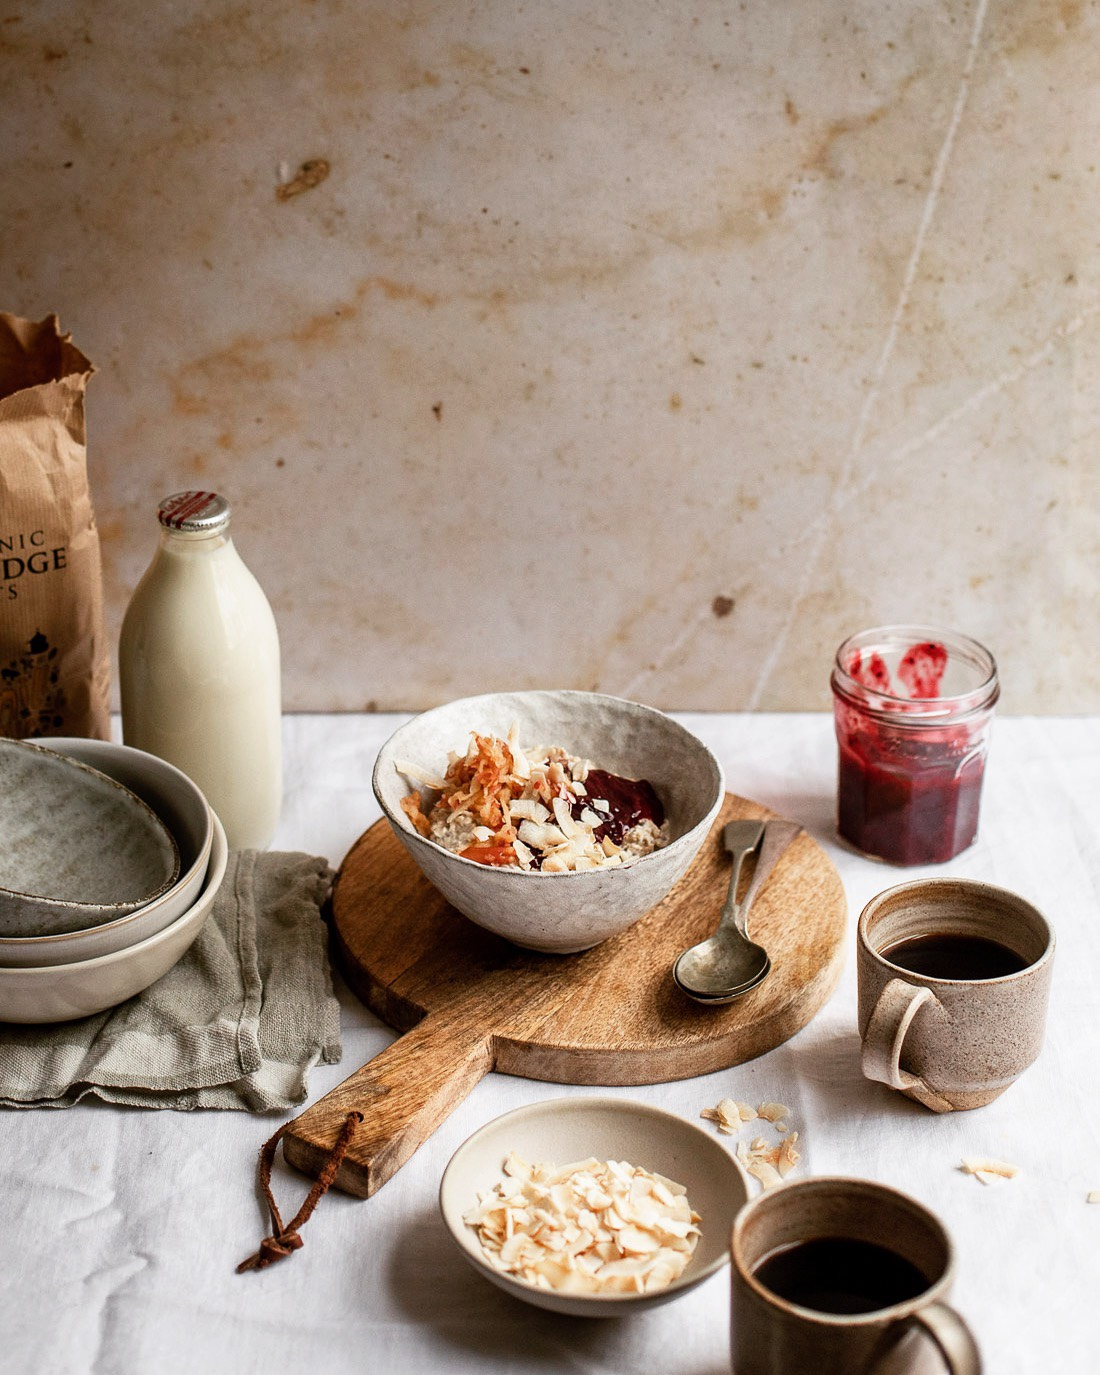 Kym Grimshaw - food and lifestyle photographer